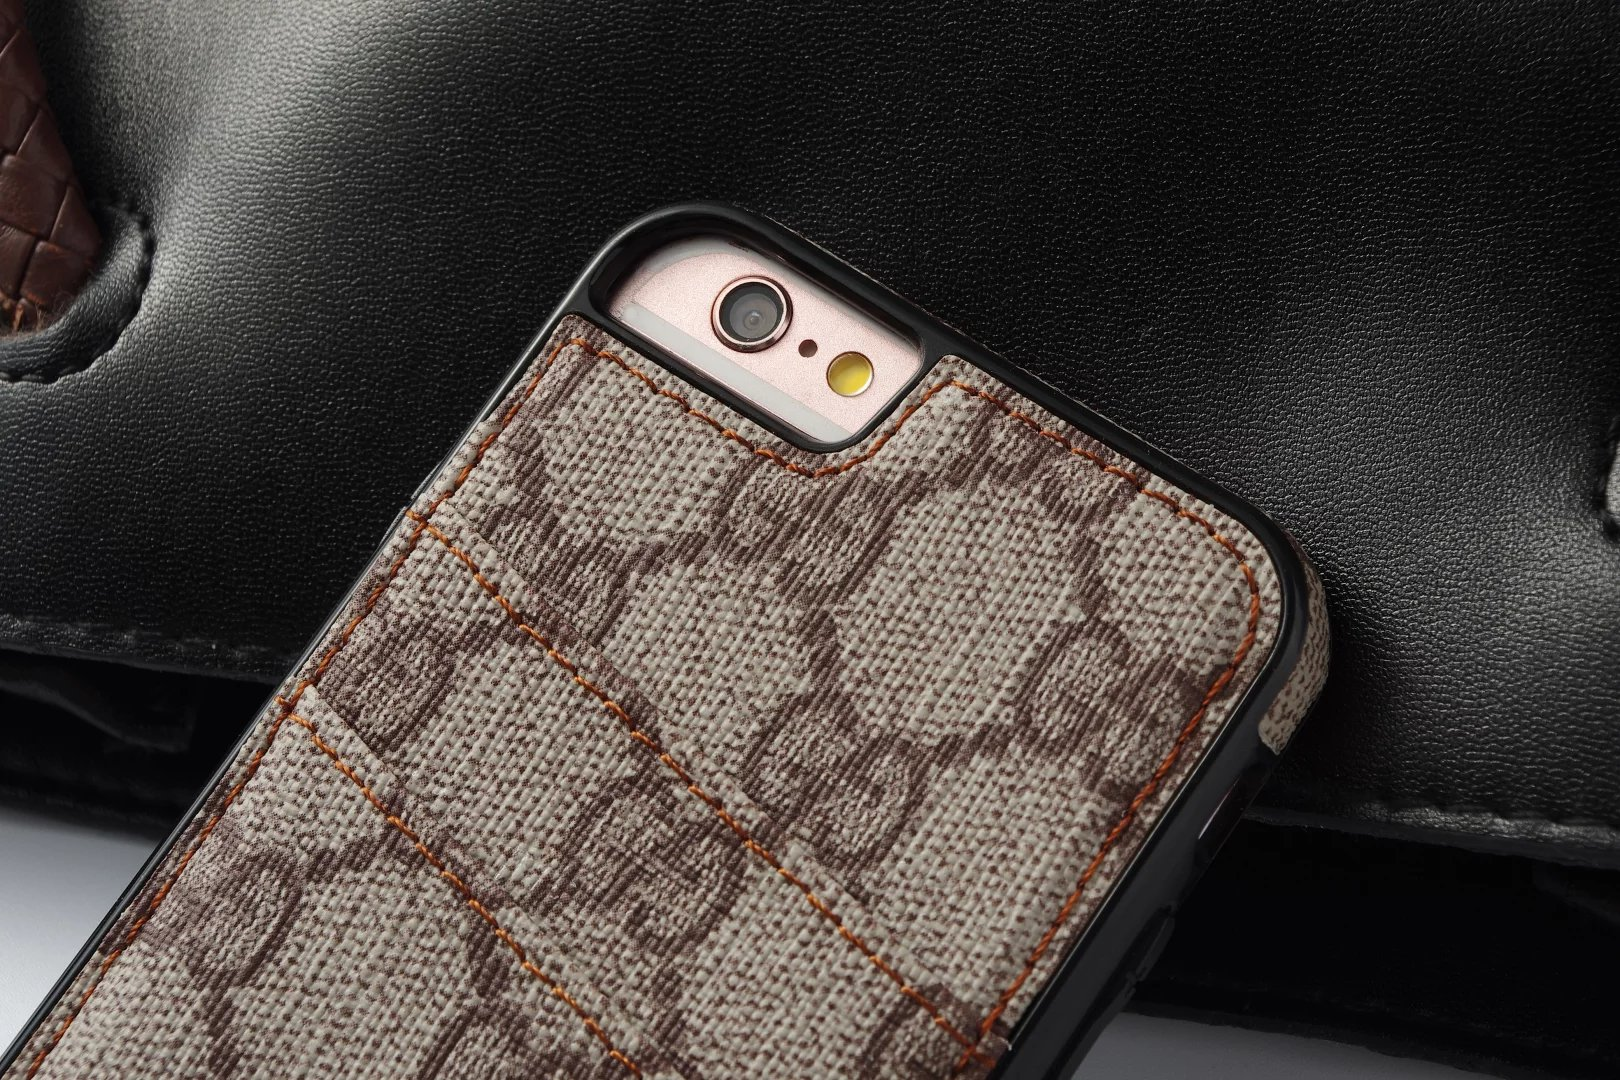 iphone hülle erstellen iphone filzhülle Louis Vuitton iphone7 Plus hülle iphone 7 Plus etui iphone 7 Plushülle apple iphone 7 Plus over handyhülle iphone 7 Plus ilikon handyhülle kreieren iphone 7 Plus gürteltasche